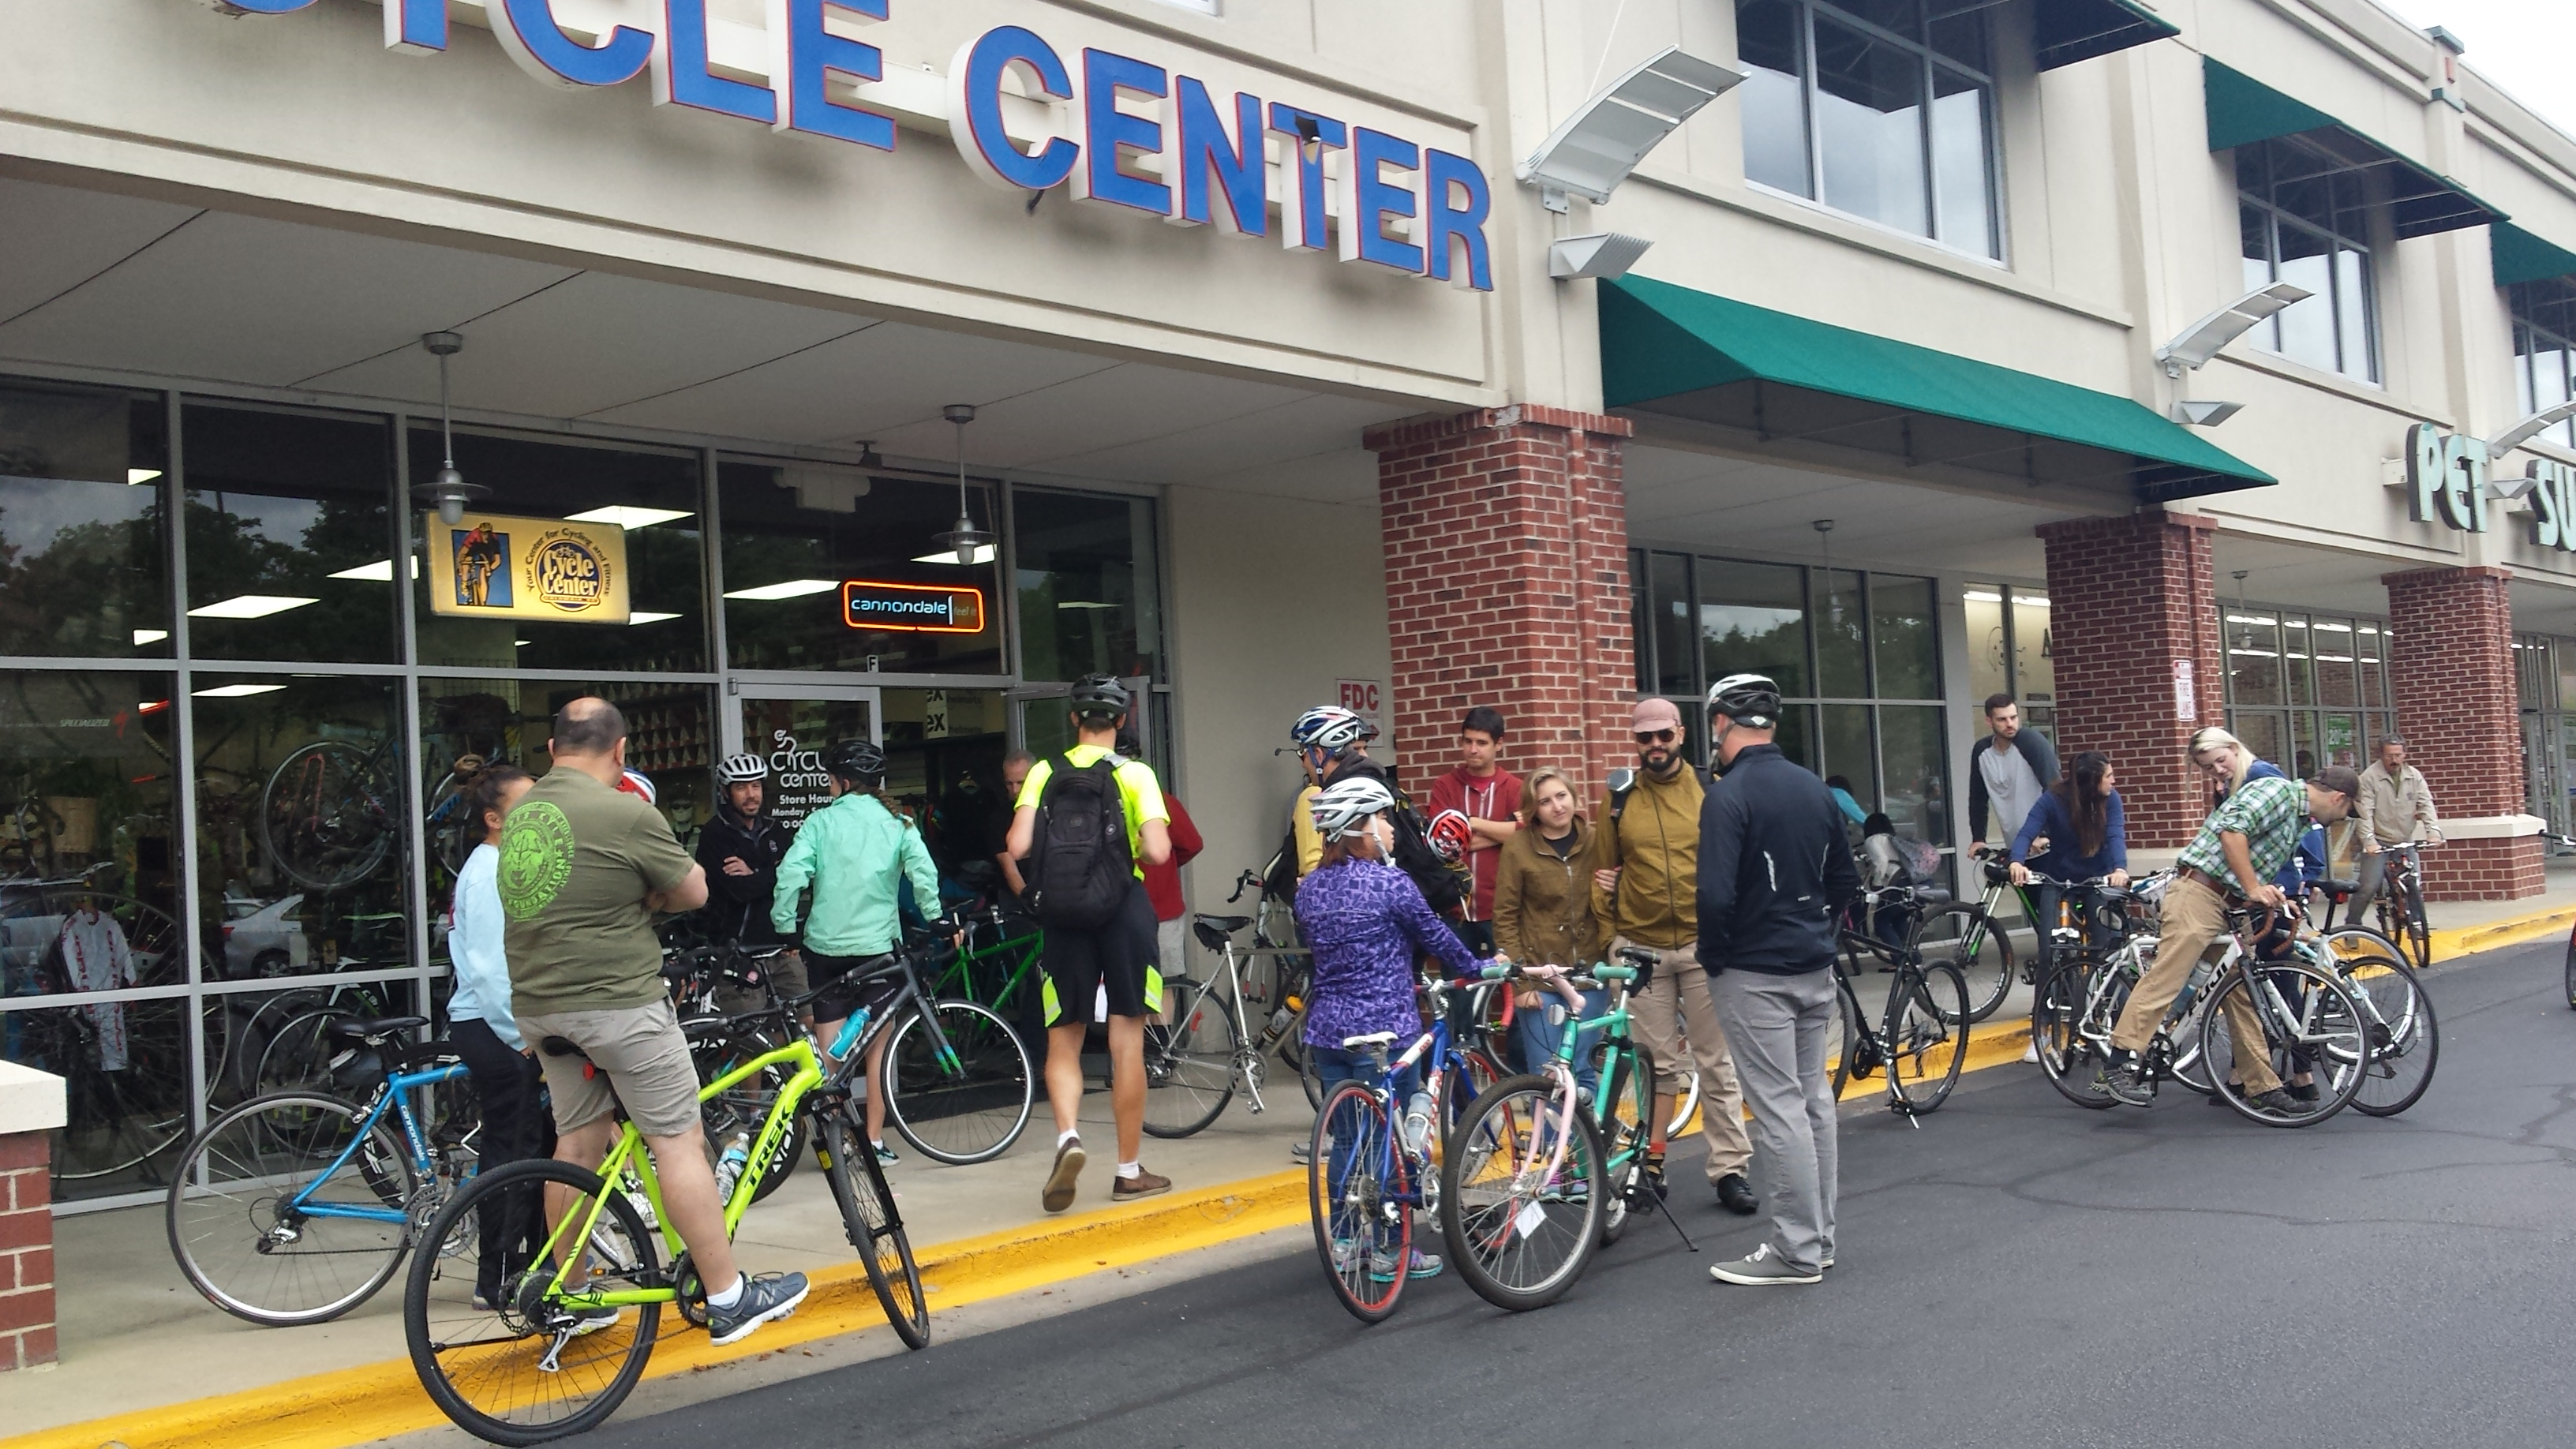 Photo of cyclists gathered at Cycle Center waiting to start a group ride